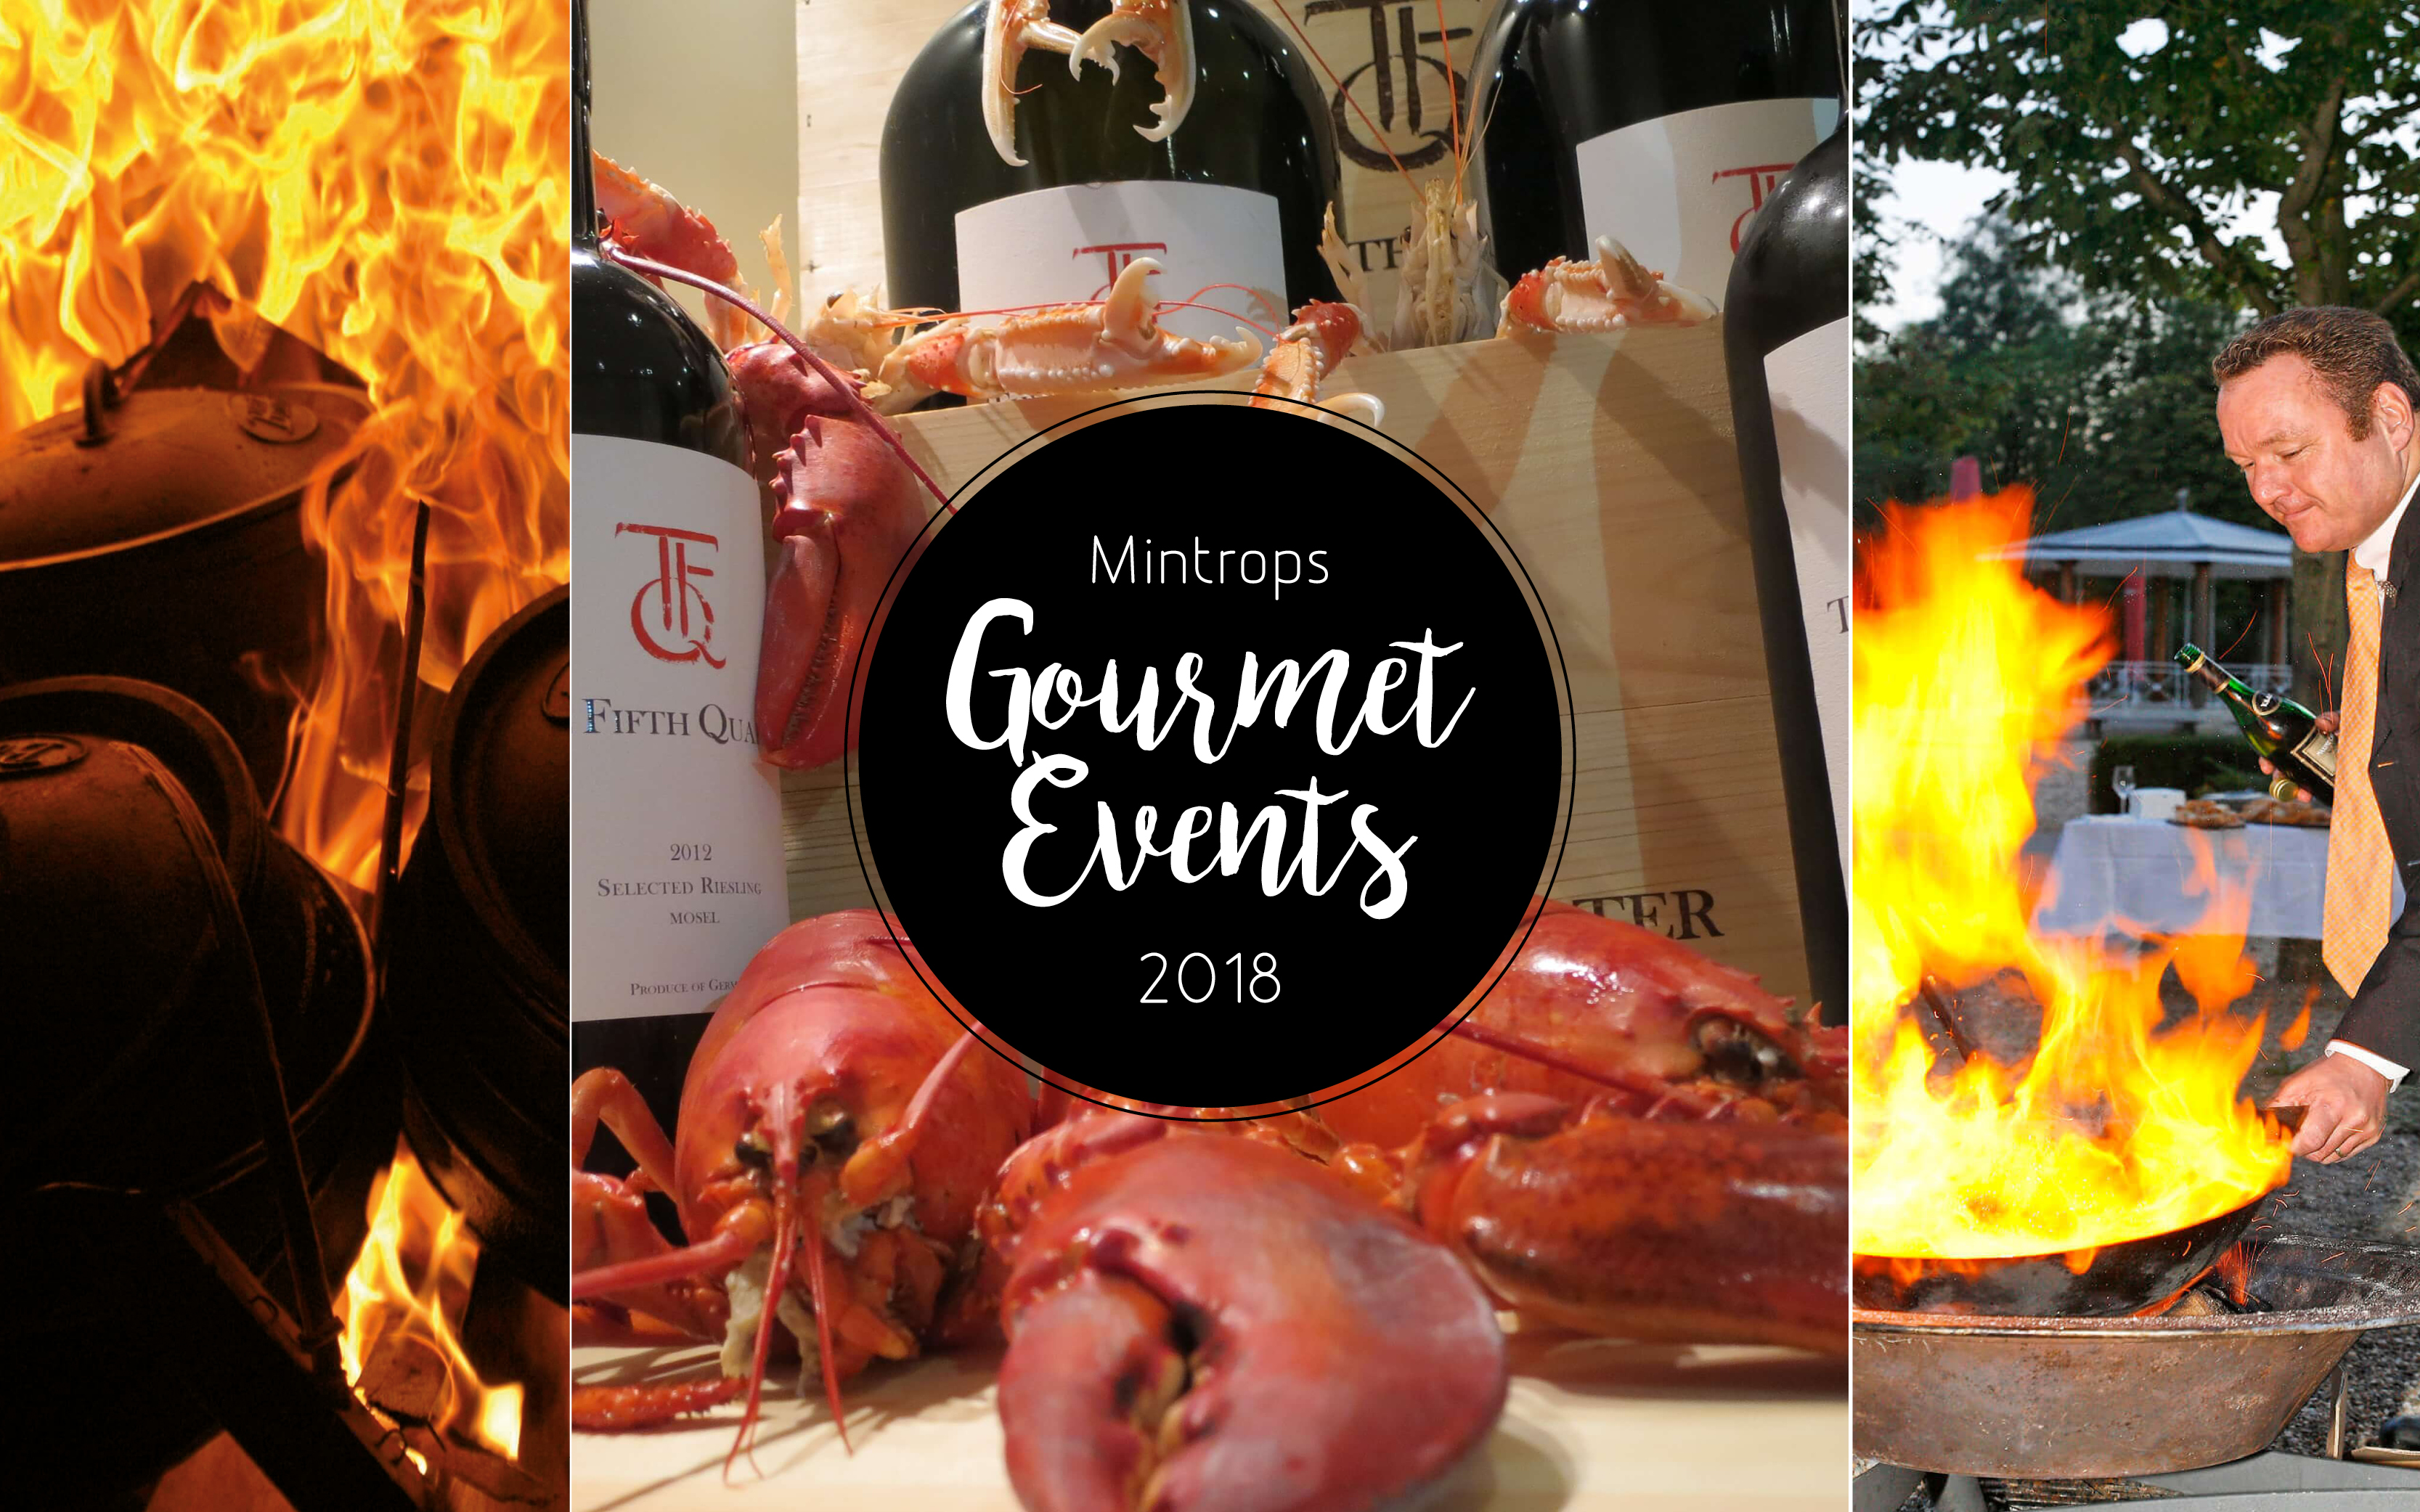 GOURMET EVENTS